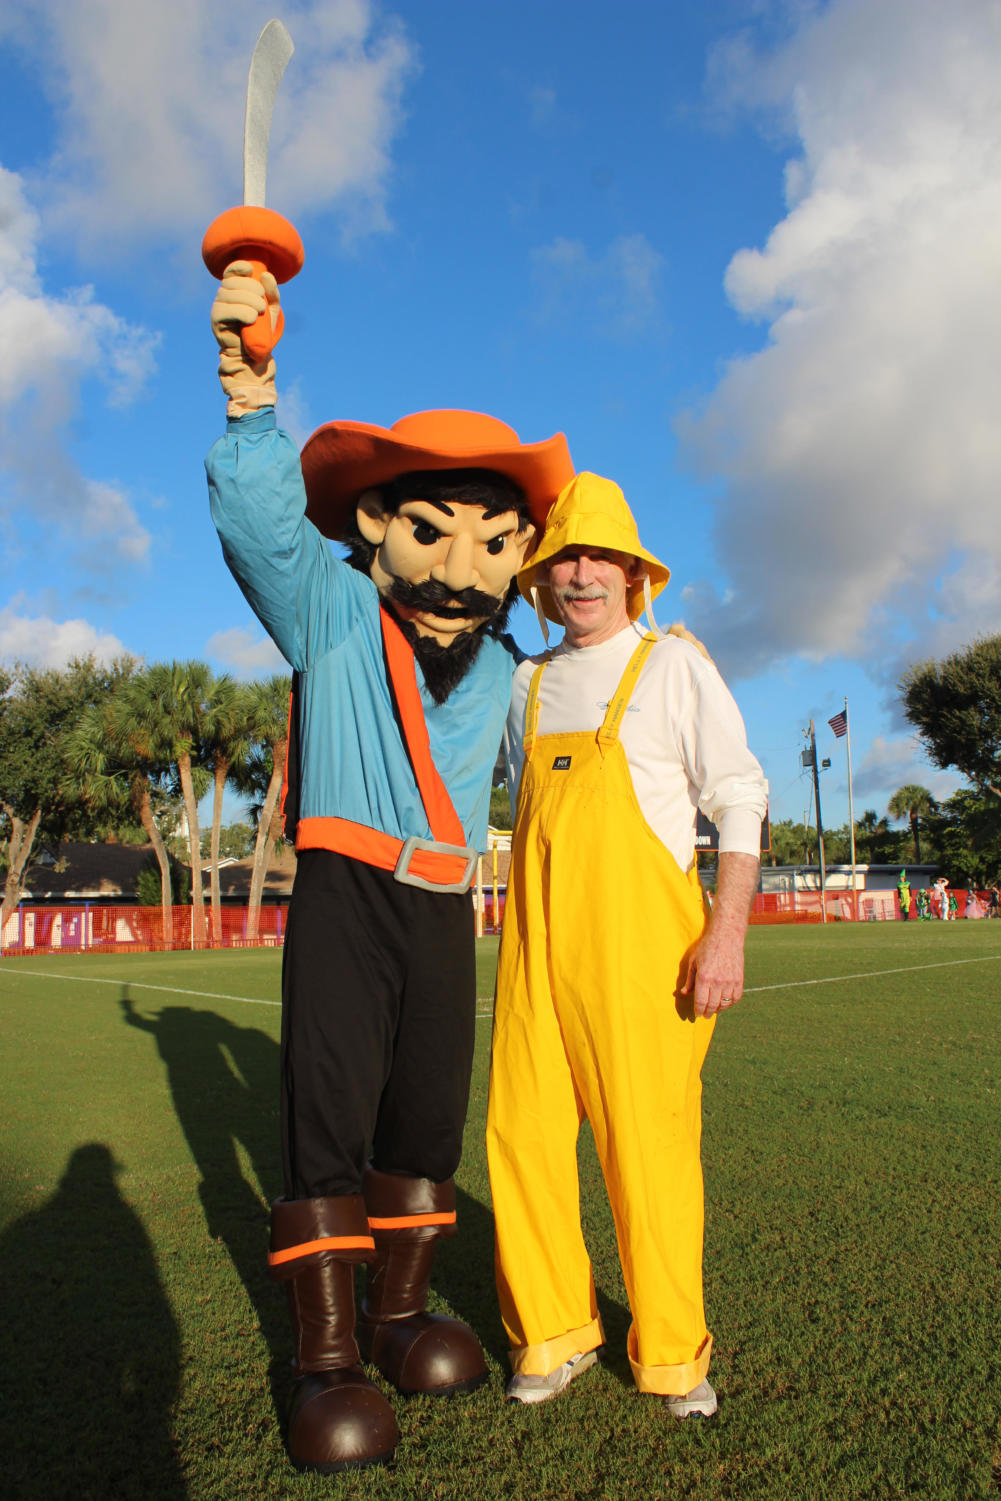 Mr. Reid and our mascot, the buccaneer, lead the Lower school halloween parade.